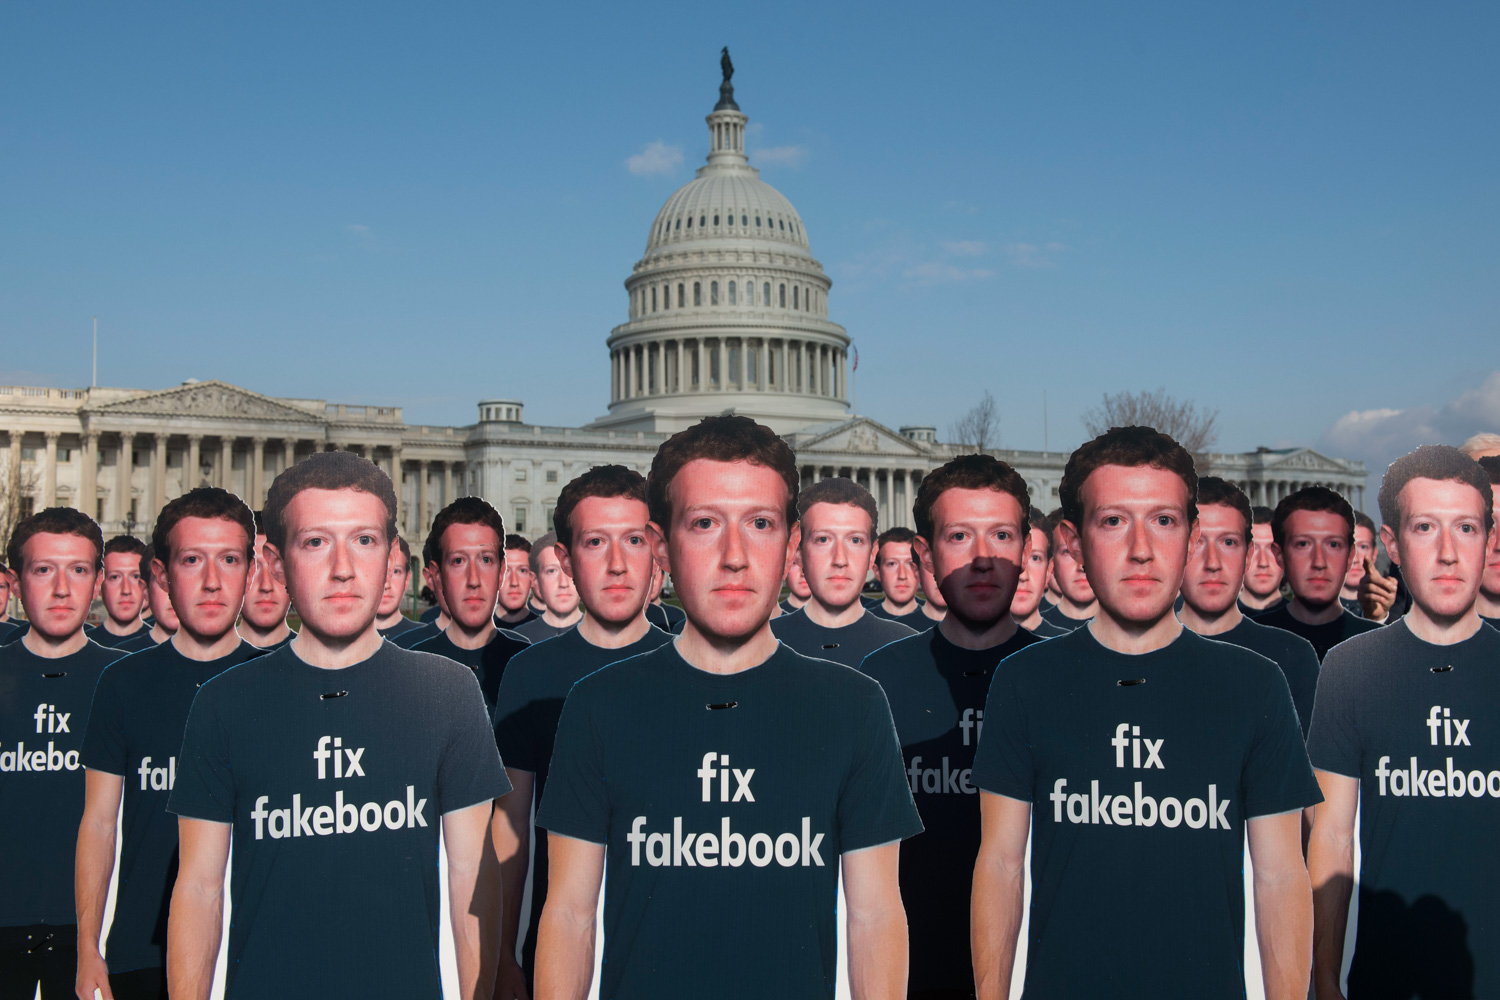 "<div class=""meta image-caption""><div class=""origin-logo origin-image none""><span>none</span></div><span class=""caption-text"">Advocacy group Avaaz placed 100 cardboard cutouts of Mark Zuckerberg outside the U.S. Capitol in Washington on the day of his testimony to Congress. (Kevin Wolf/AP images for AVAAZ)</span></div>"